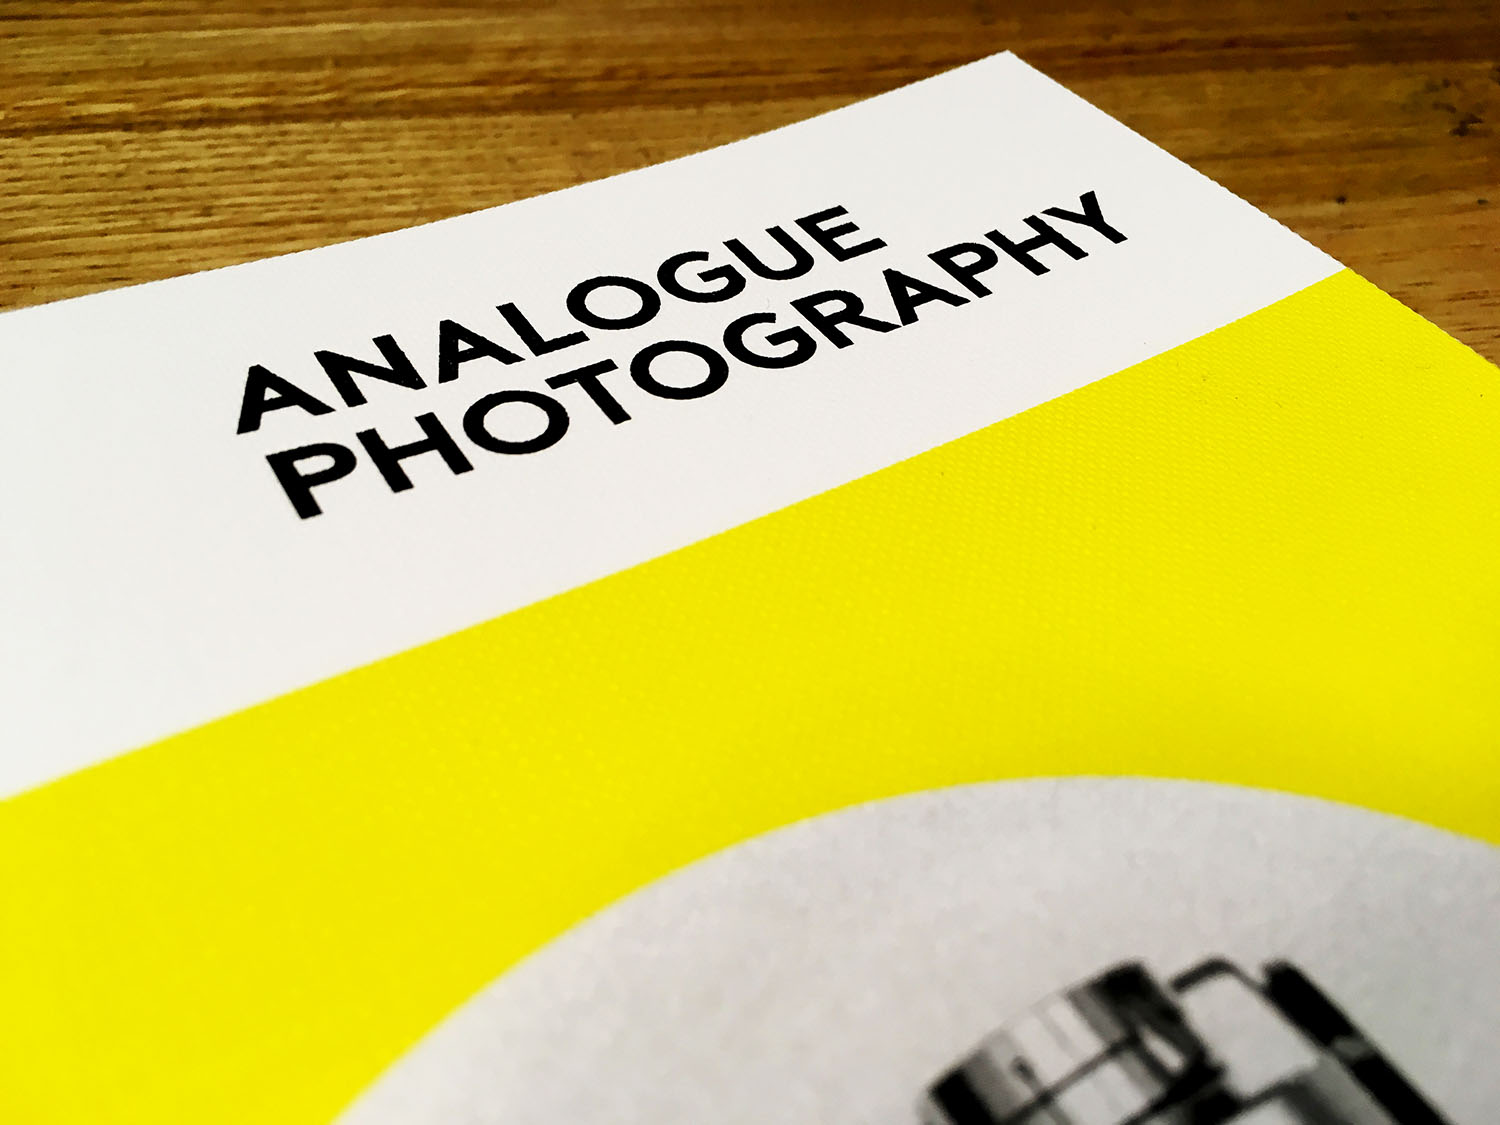 Camera Geekery: Analogue Photography by Andrew Bellamy